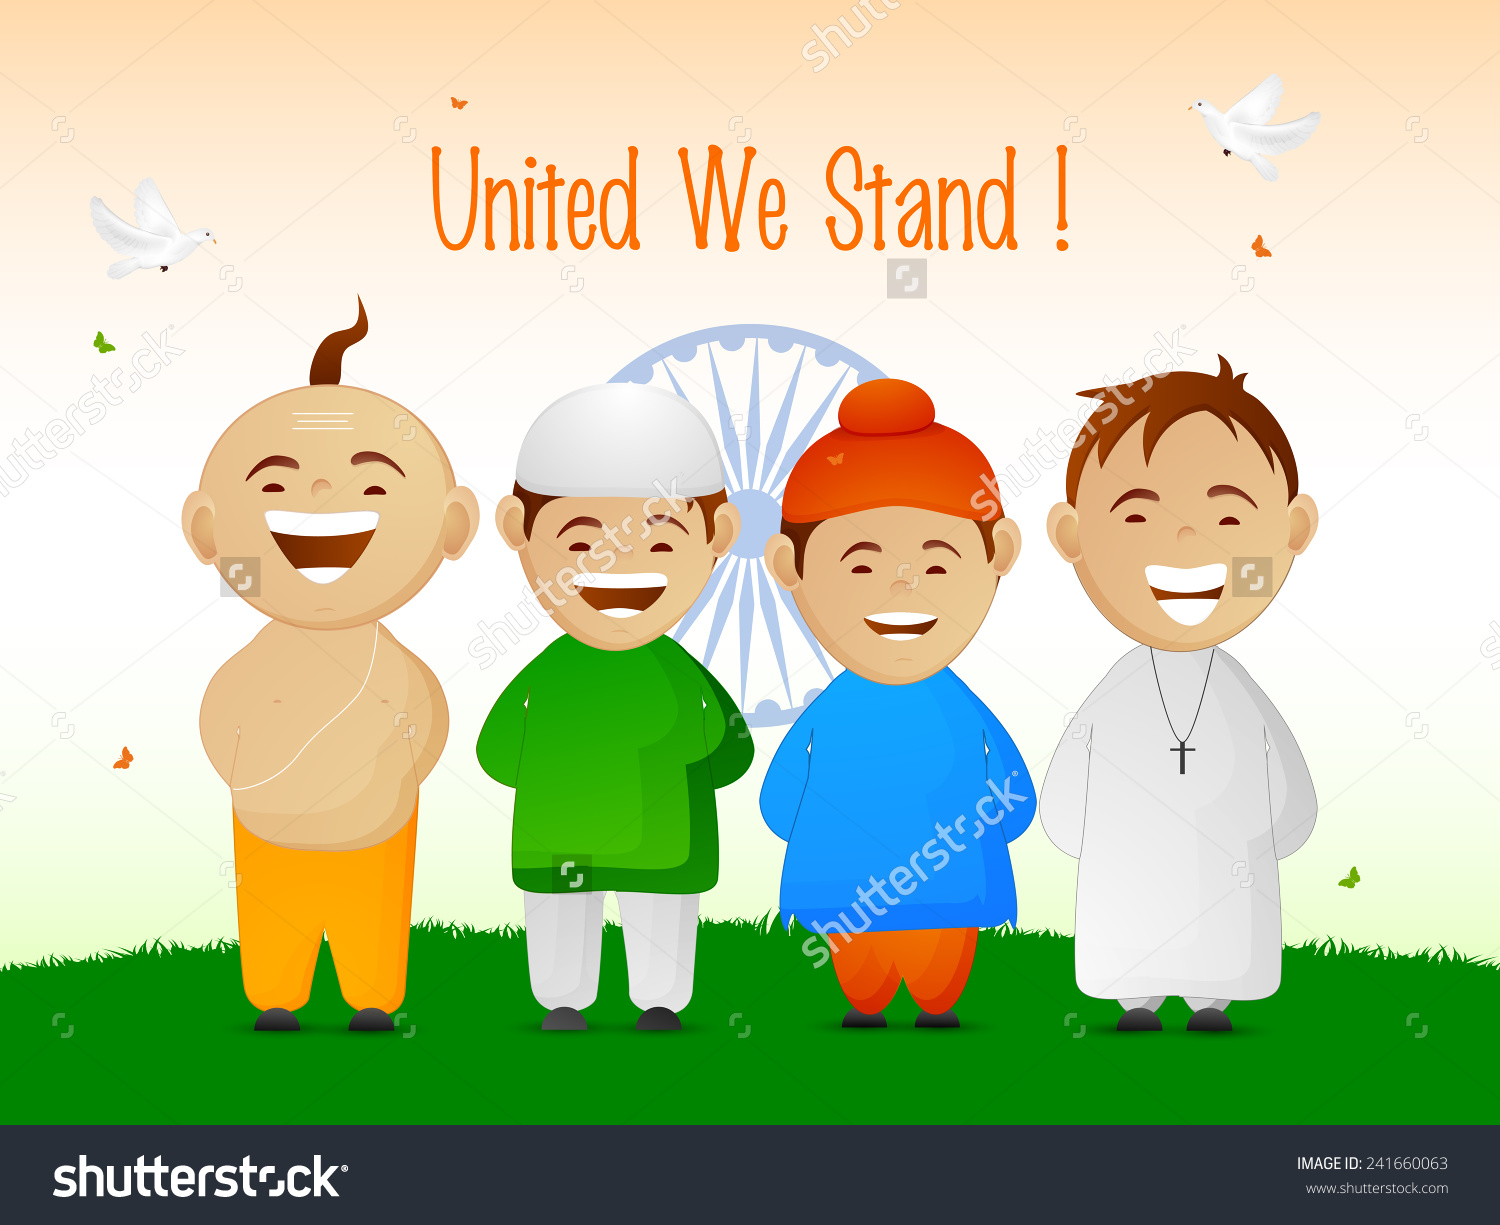 India Cute Little Kids Different Religion Stock Vector 241660063.